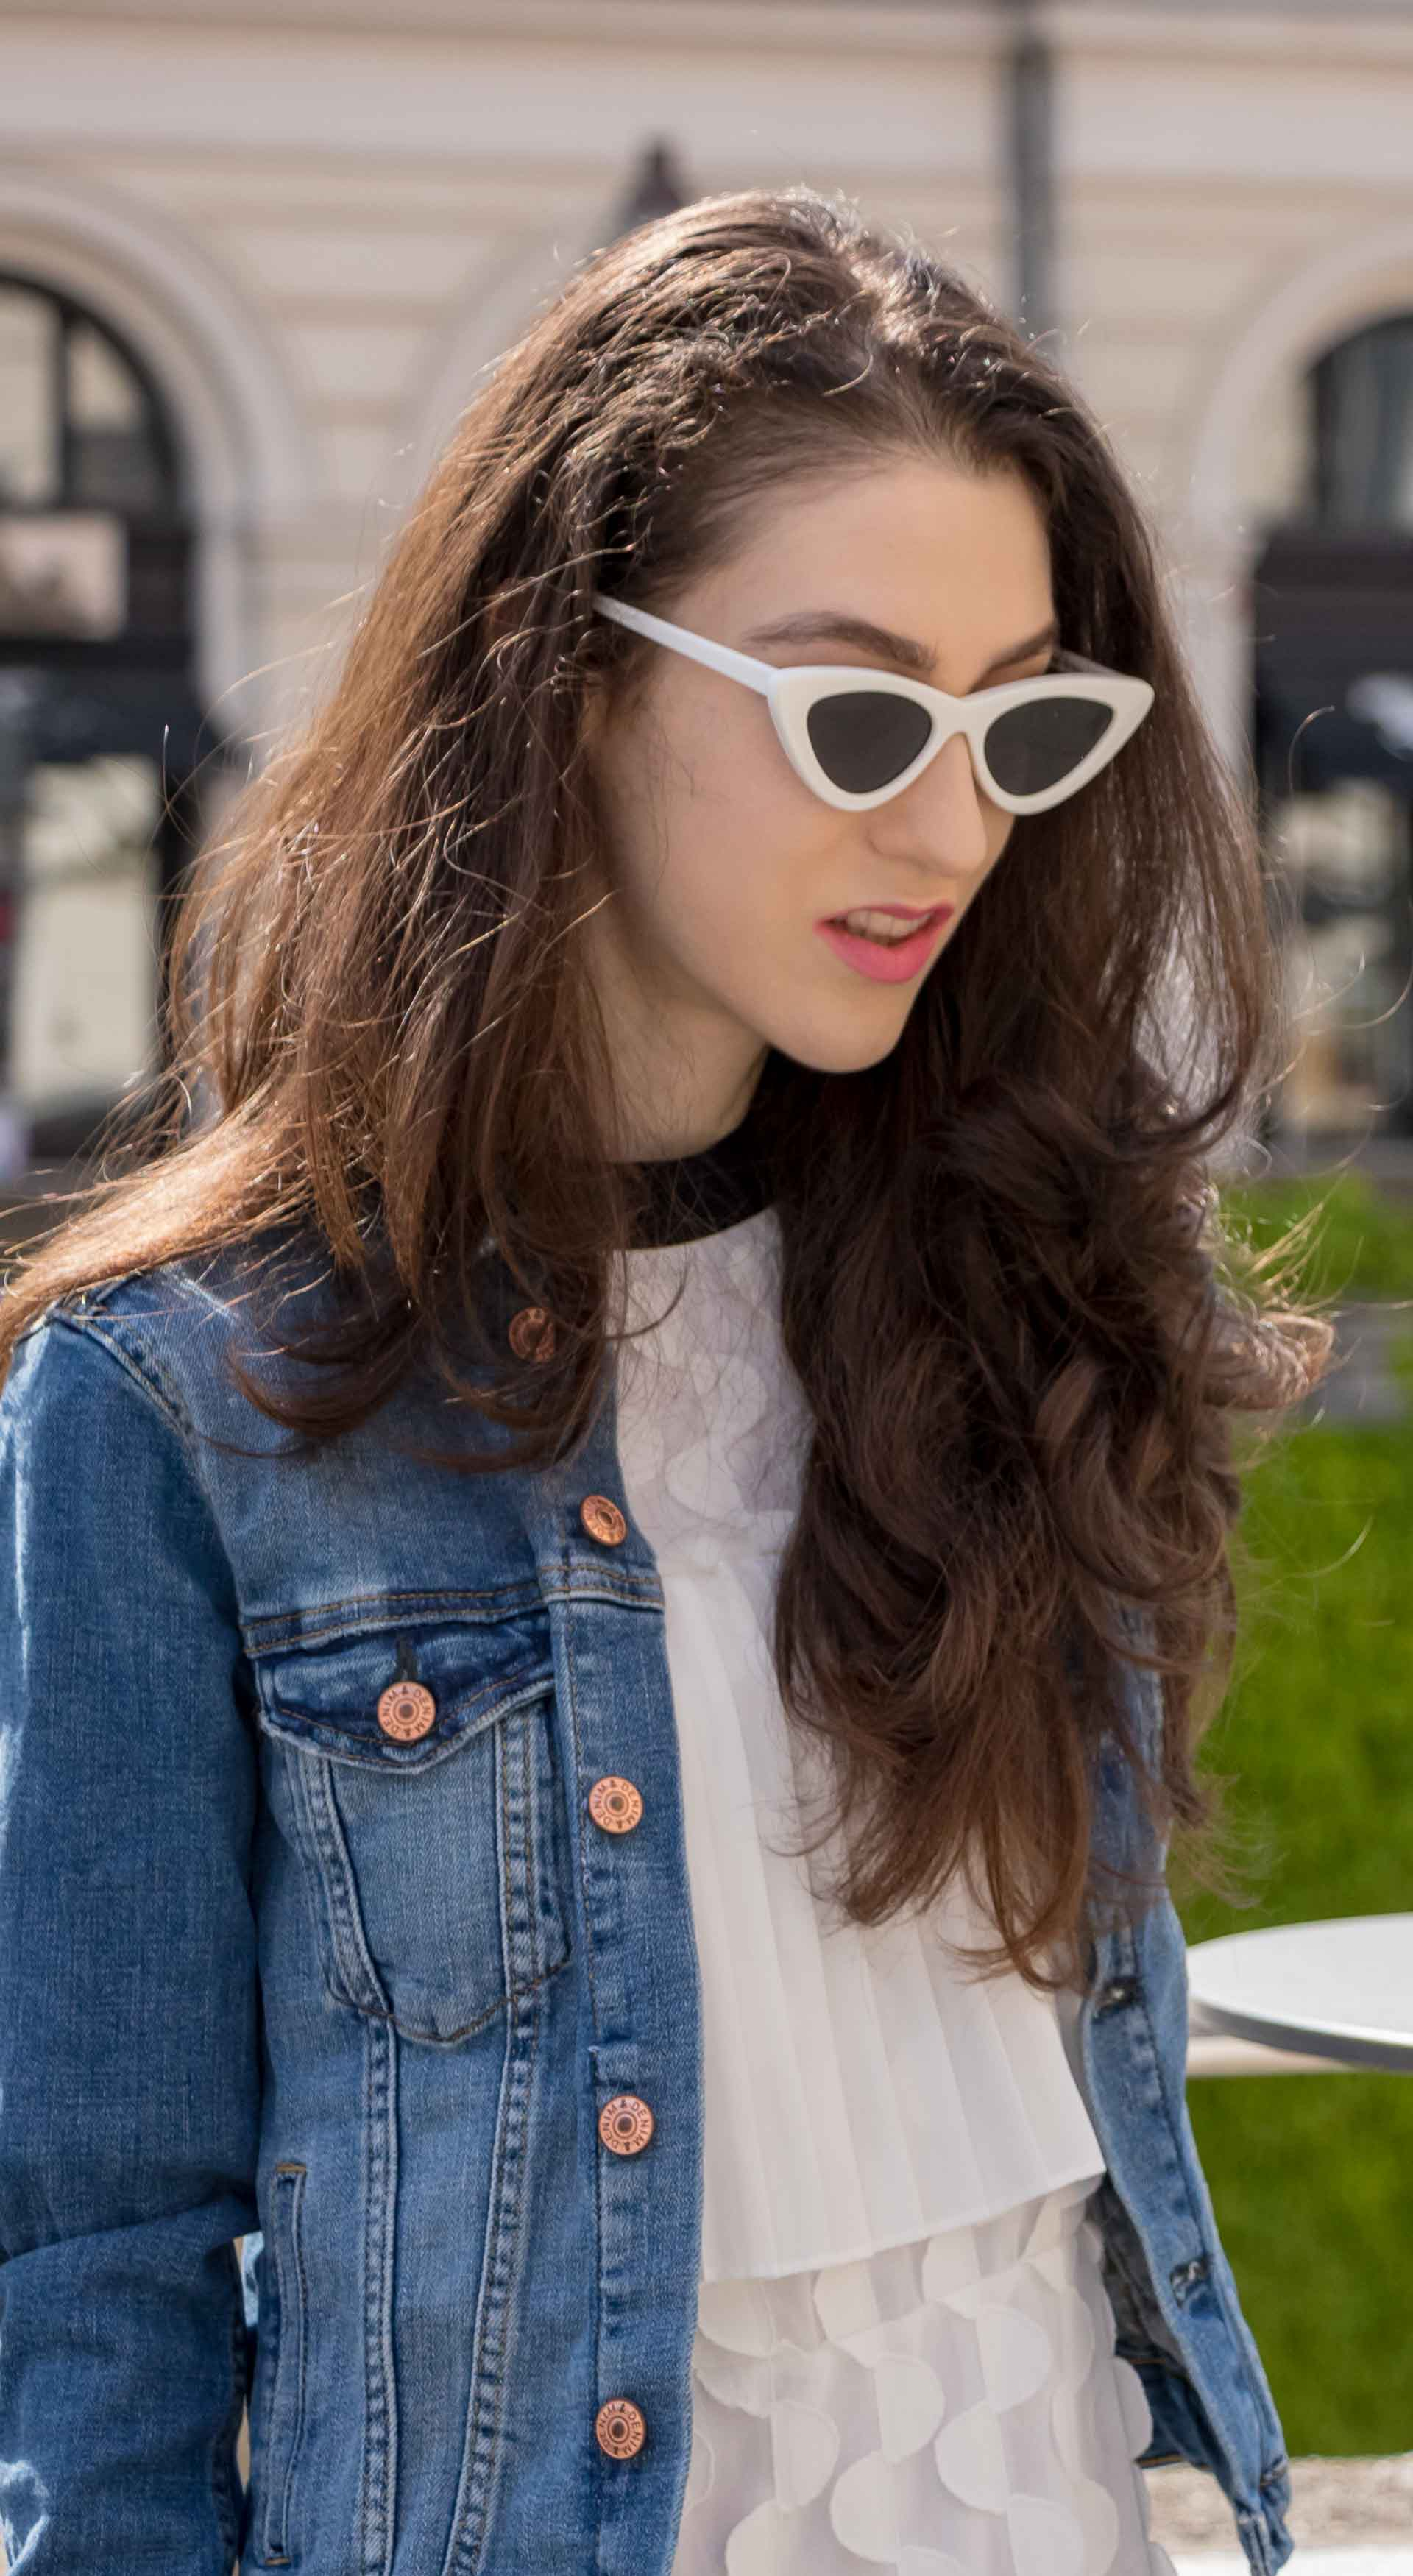 Veronika Lipar Fashion Editor of Brunette from Wall Street wearing H&M blue denim jacket, Storets white pleated short dress, cat eye sunglasses